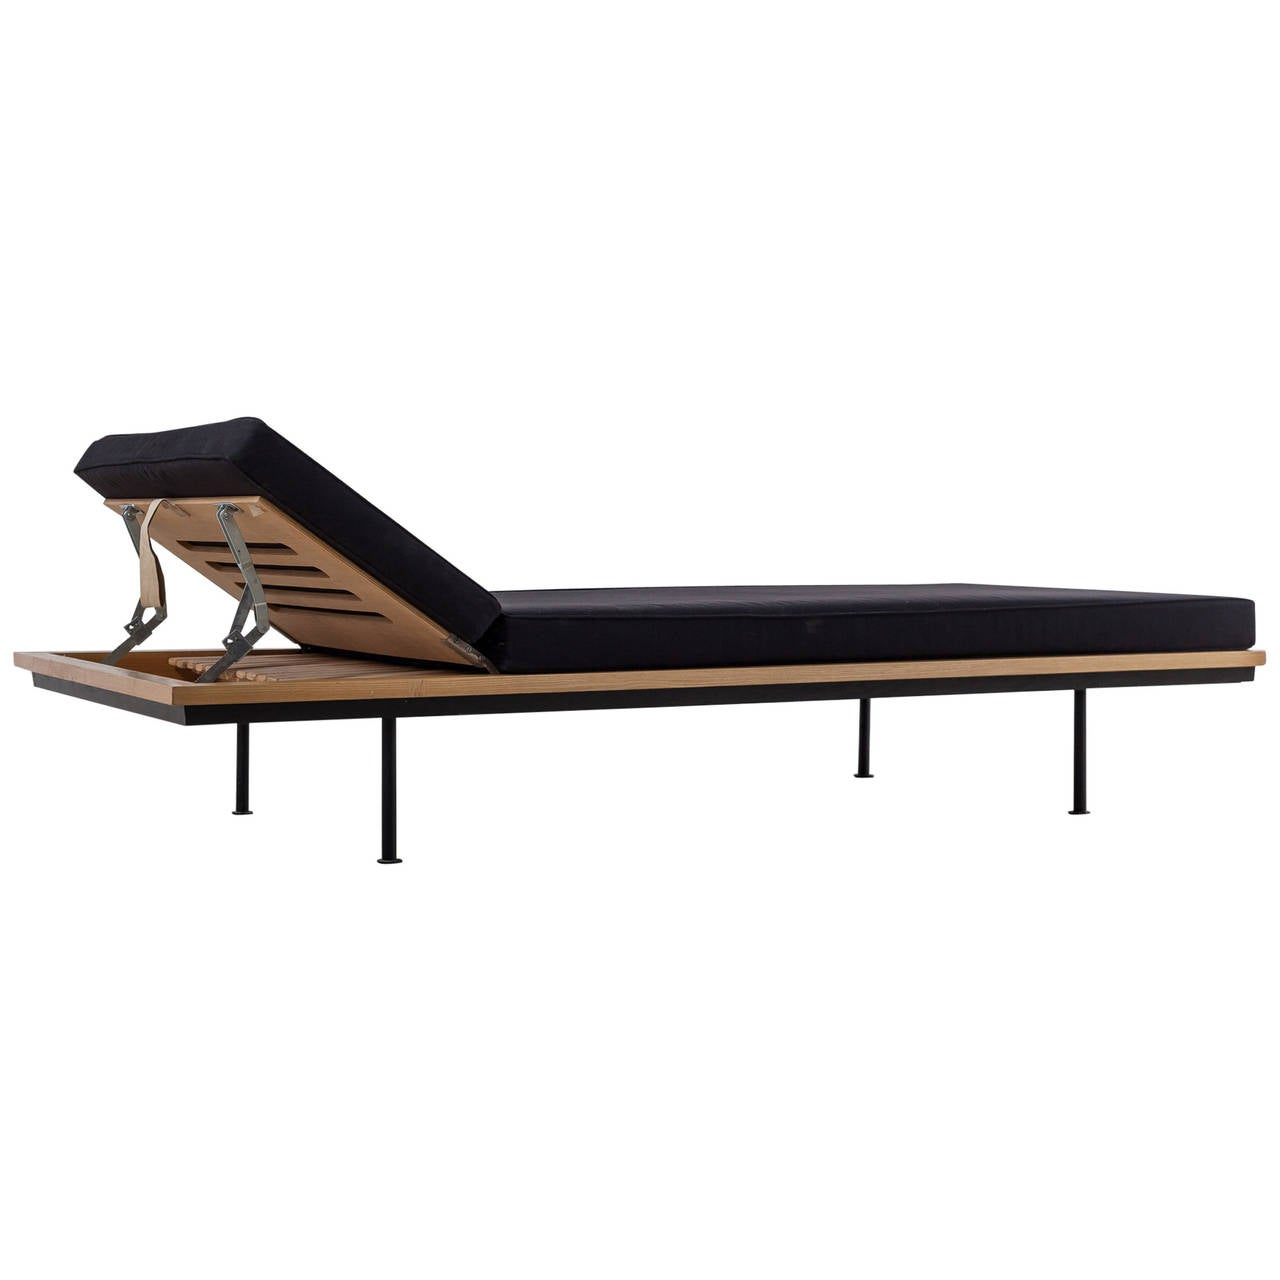 Kurt Thut Daybed with Adjustable Headrest, Swiss, 1950s For Sale